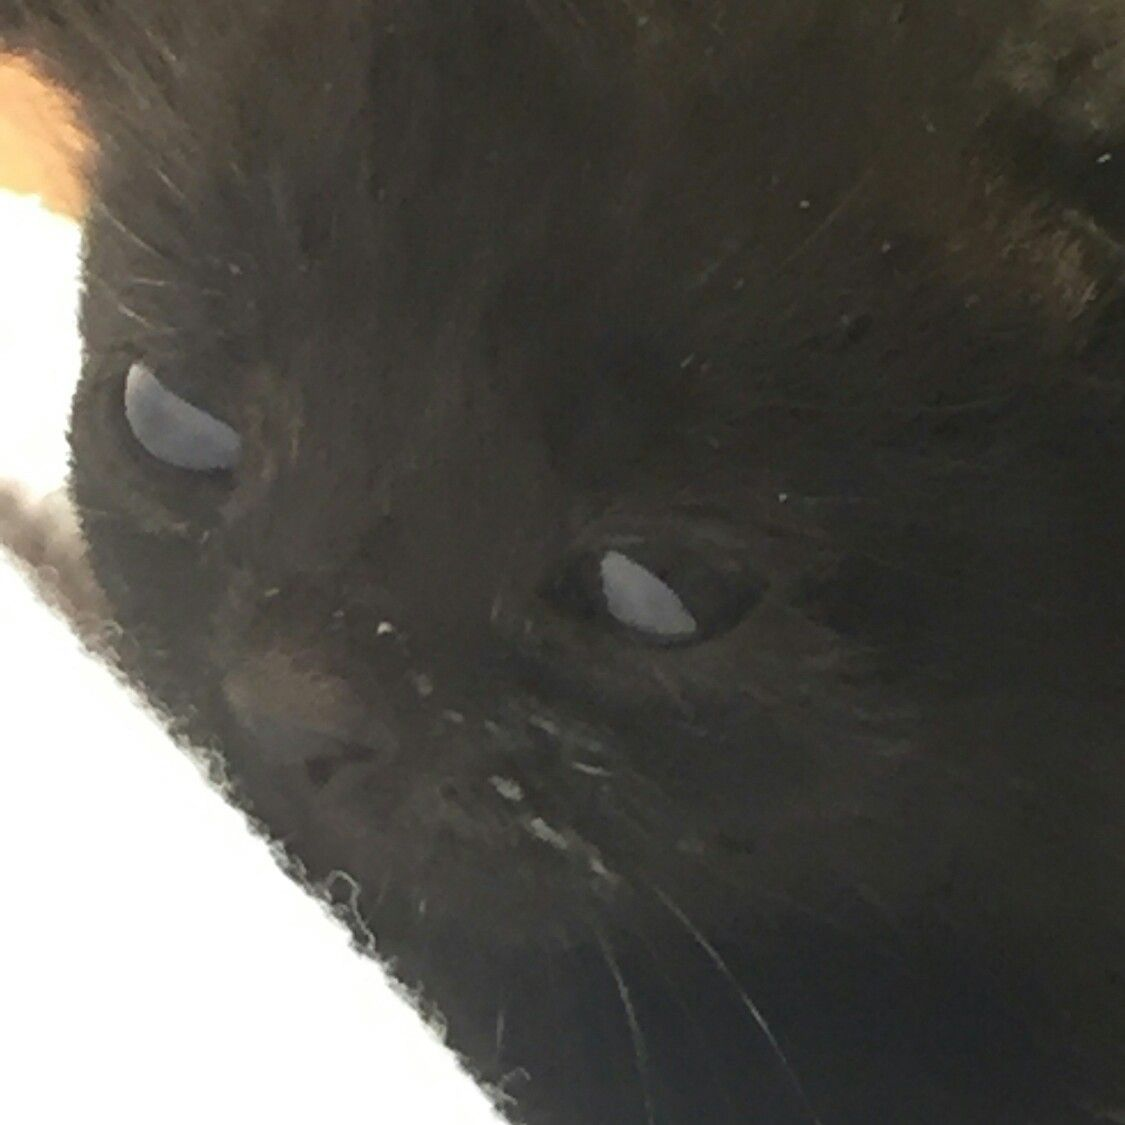 Eli Powe Hubbard He Has A Little Milk On His Face Here Oh My Is He Cute Though 5 18 16 Kitten Cute Animals